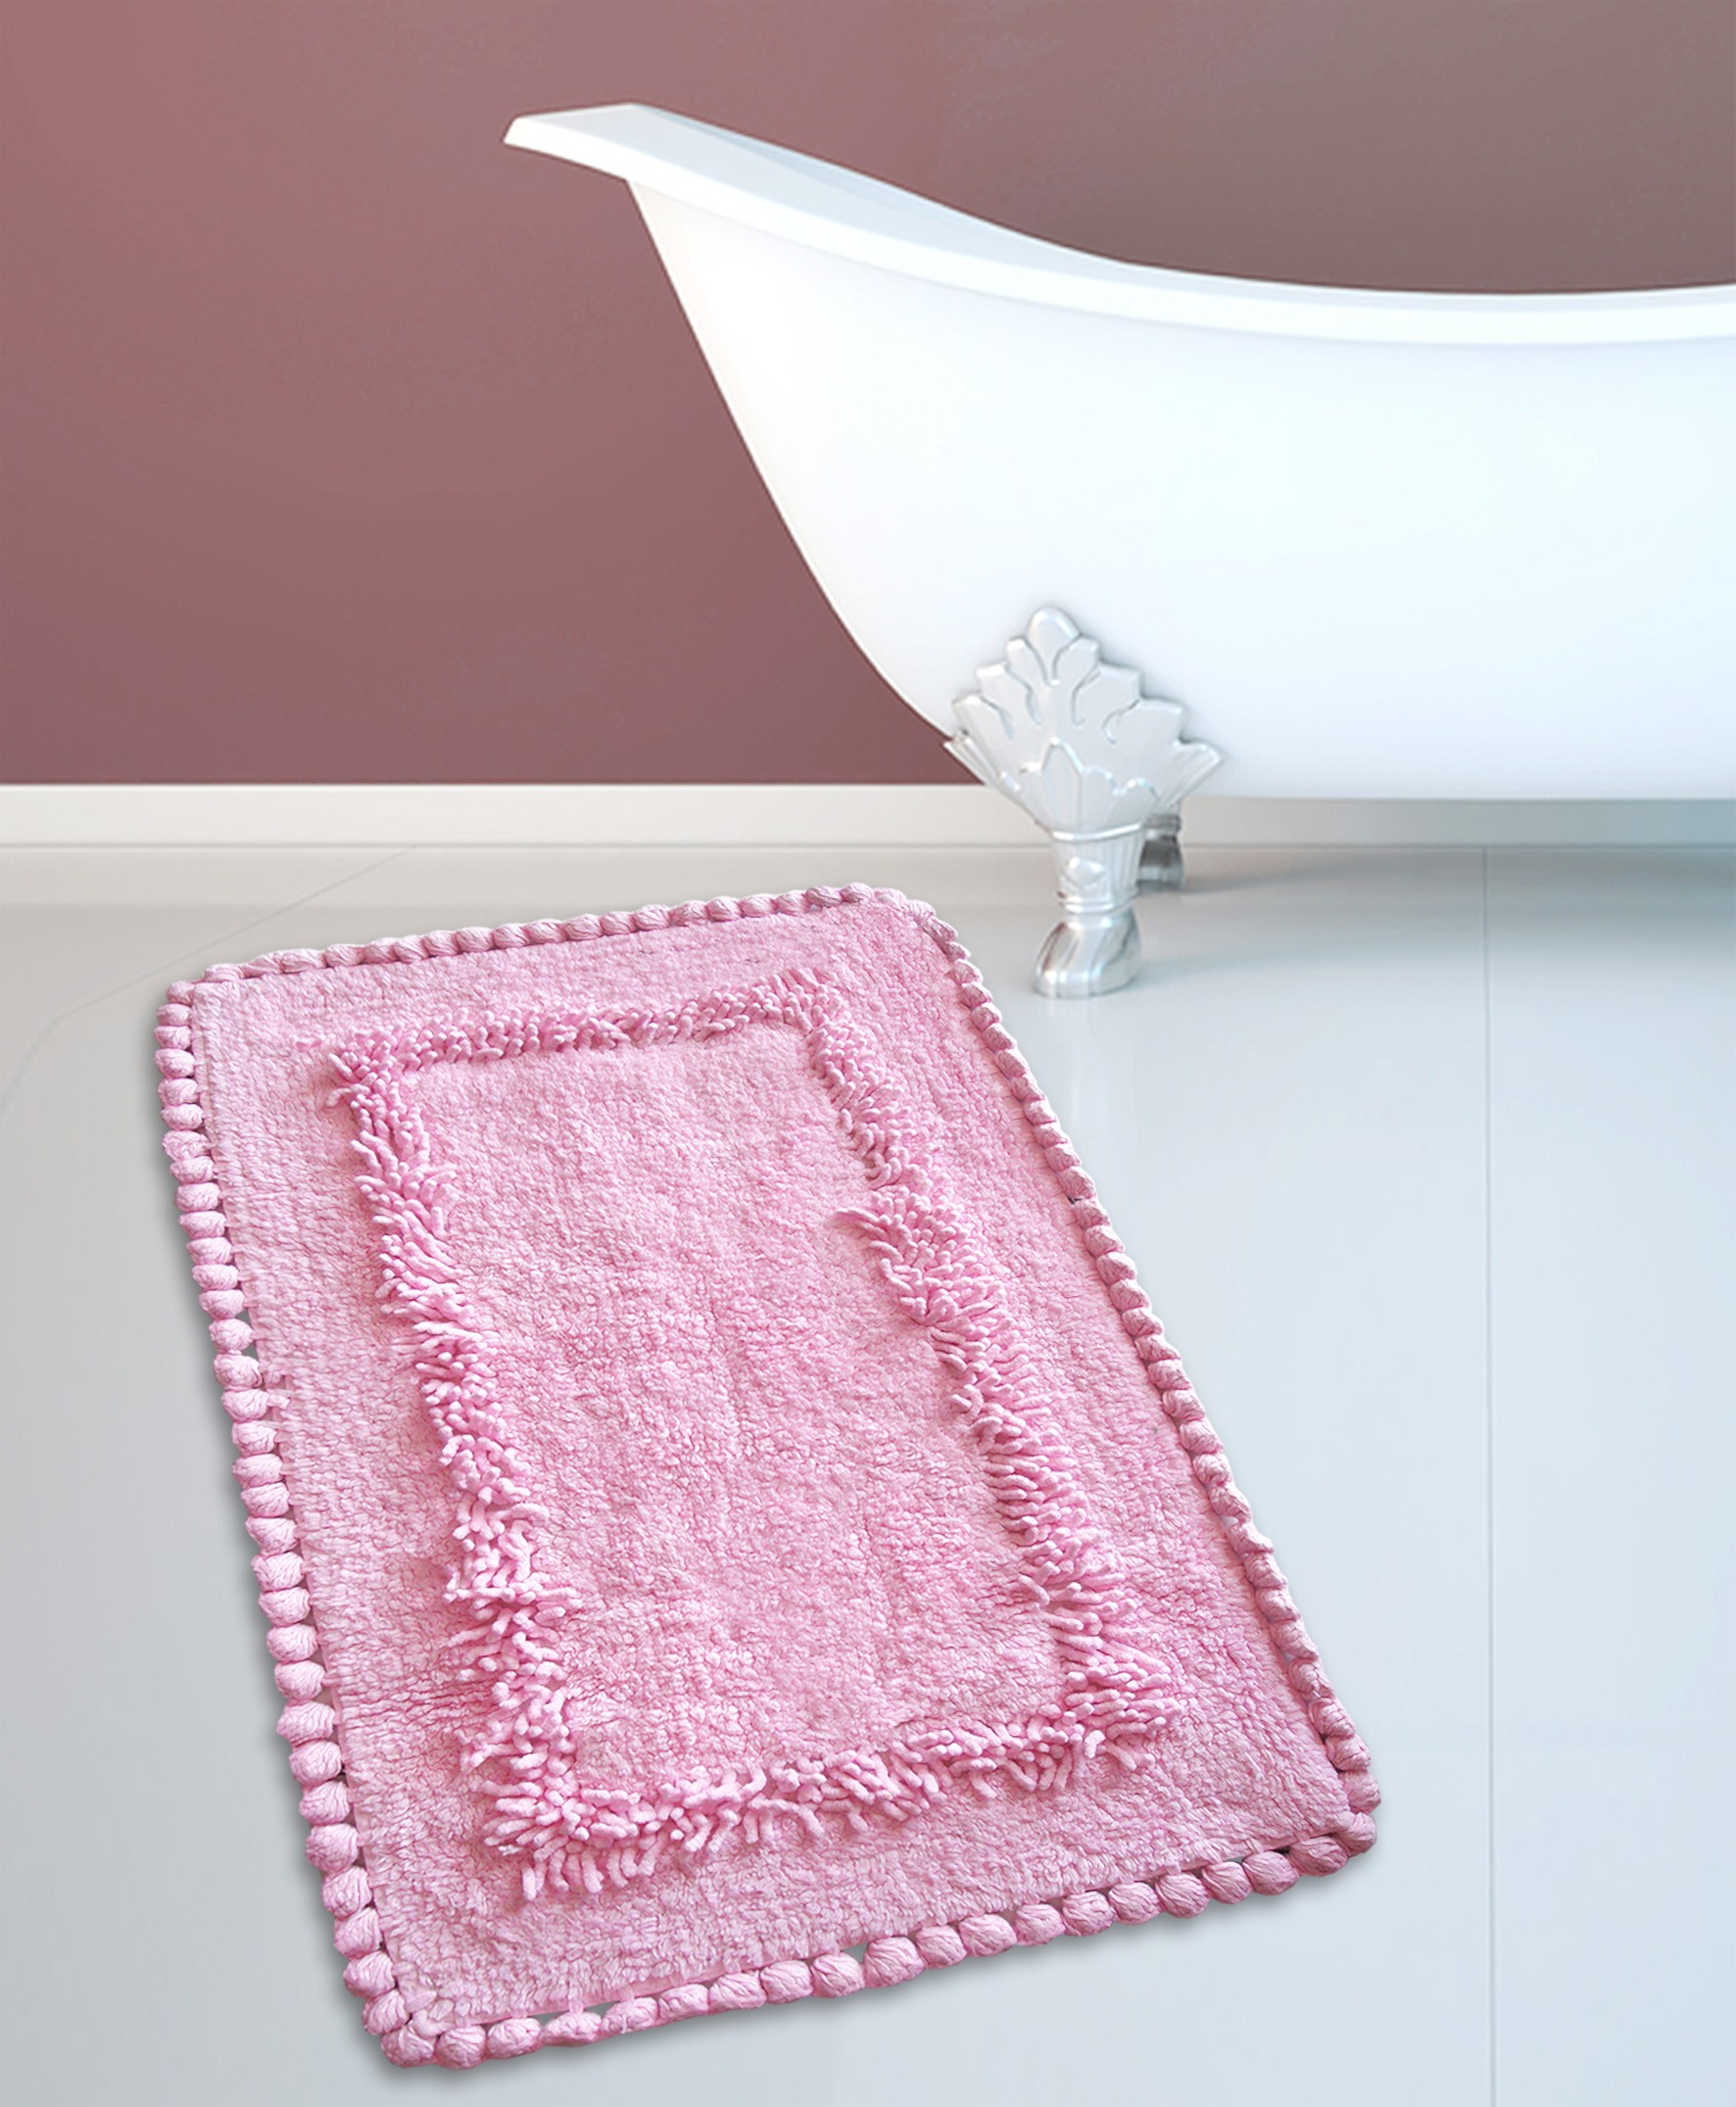 Ταπέτο Μπάνιου San Lorentzo 923 Crochet Light Rose 50×80